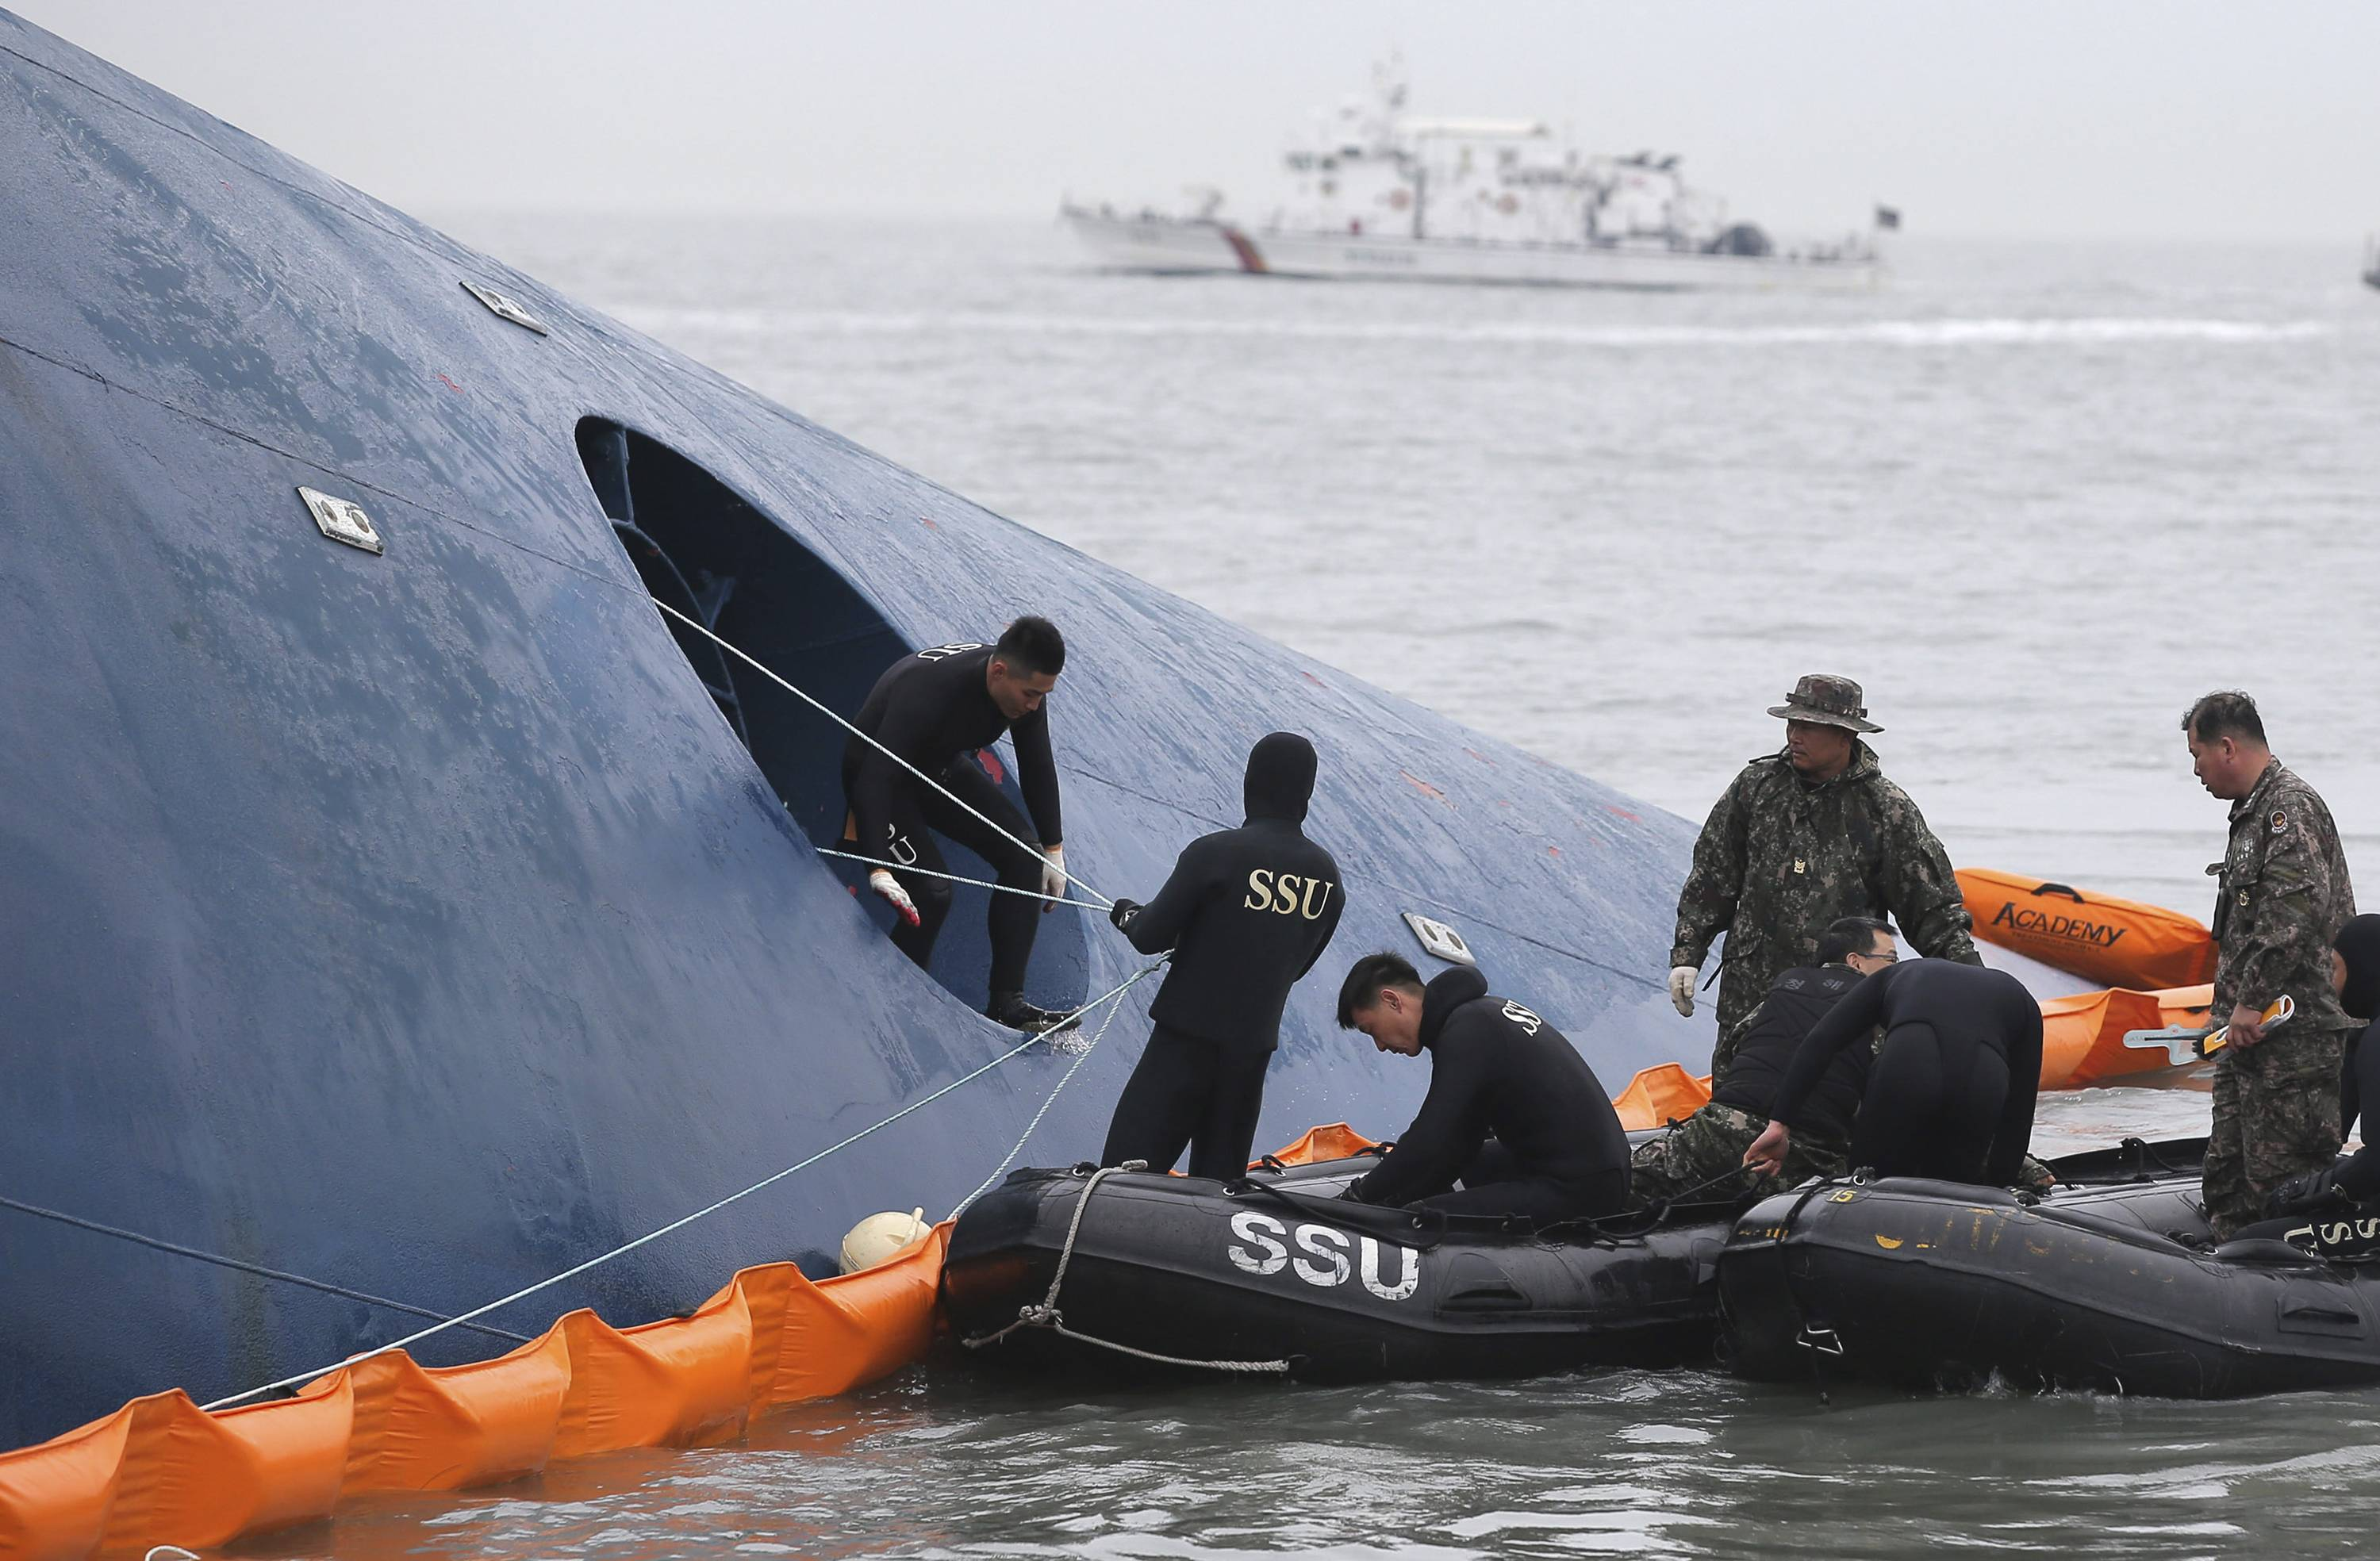 In this April 17 photo, South Korean rescue team members try to rescue passengers trapped in the ferry Sewol sinking in the water off South Korea's southern coast near Jindo. Internal partitions in the ferry have become waterlogged and started to bend, said government task force spokesman Ko Myung-seok. Coast guard officials said this can prevent divers from entering different parts of the ferry. Ko also said divers were unable to carry out underwater searches Saturday because of bad weather.